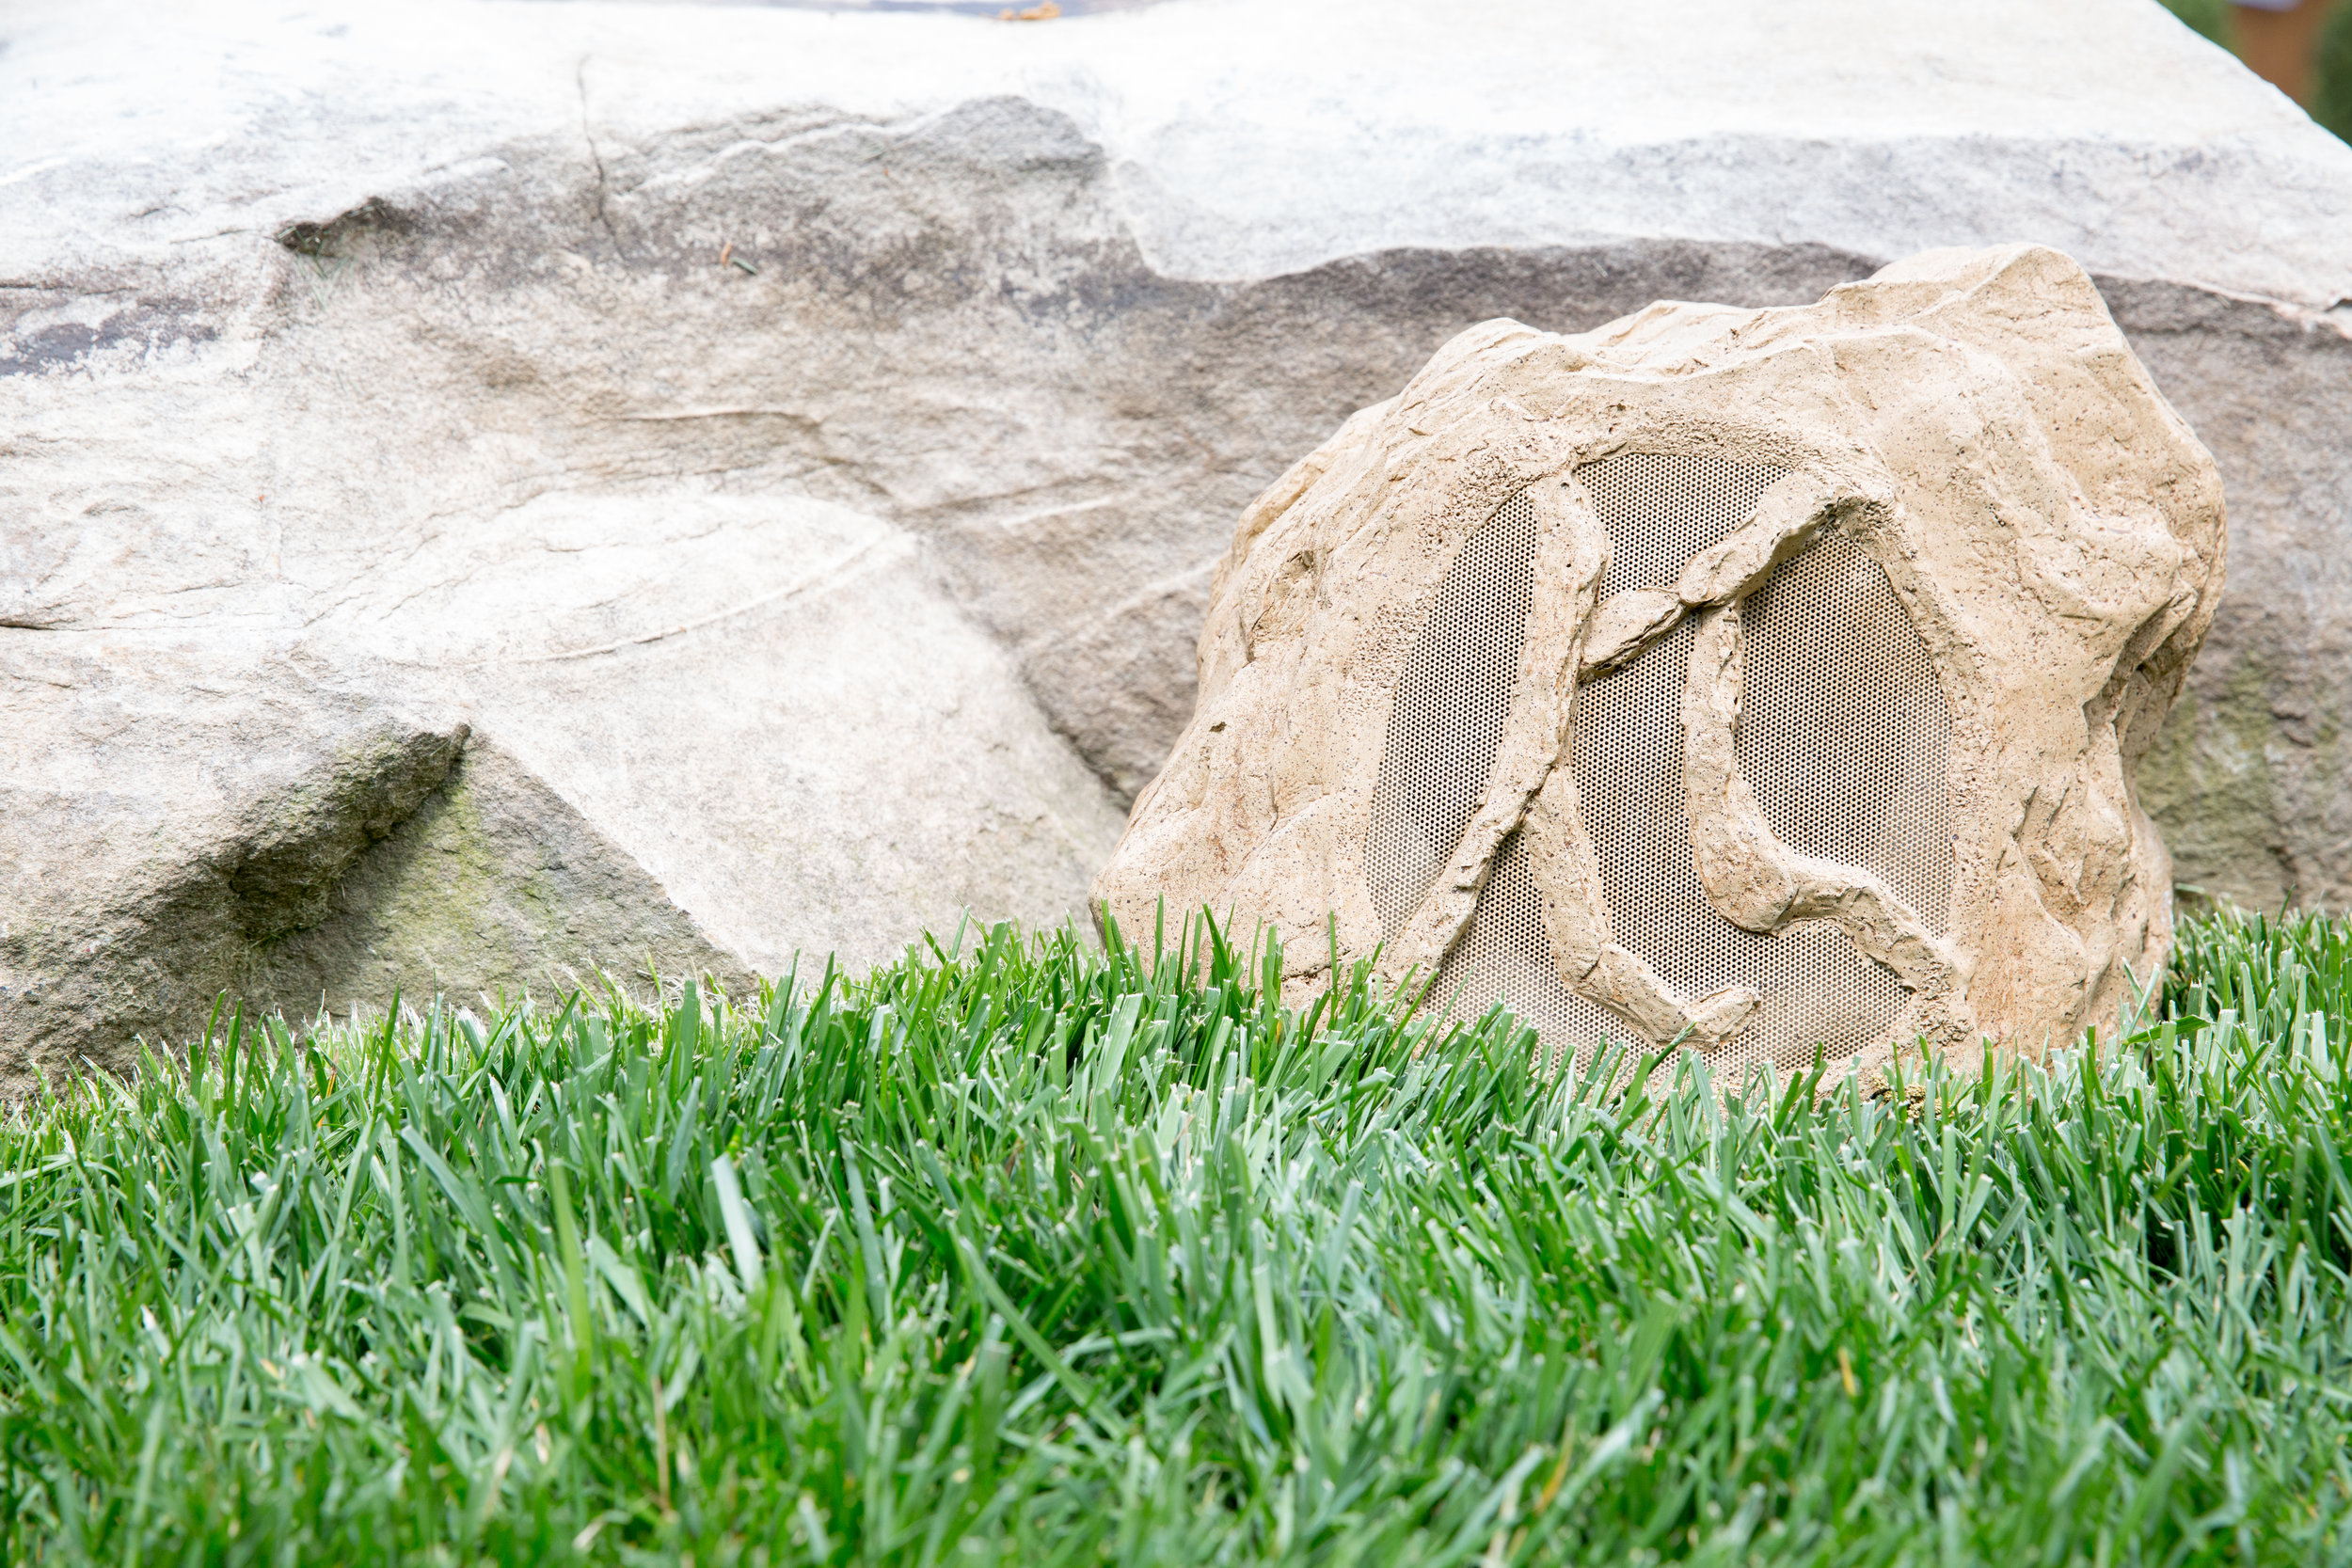 Rock speakers can be color matched to the landscape and are easily hidden by planting